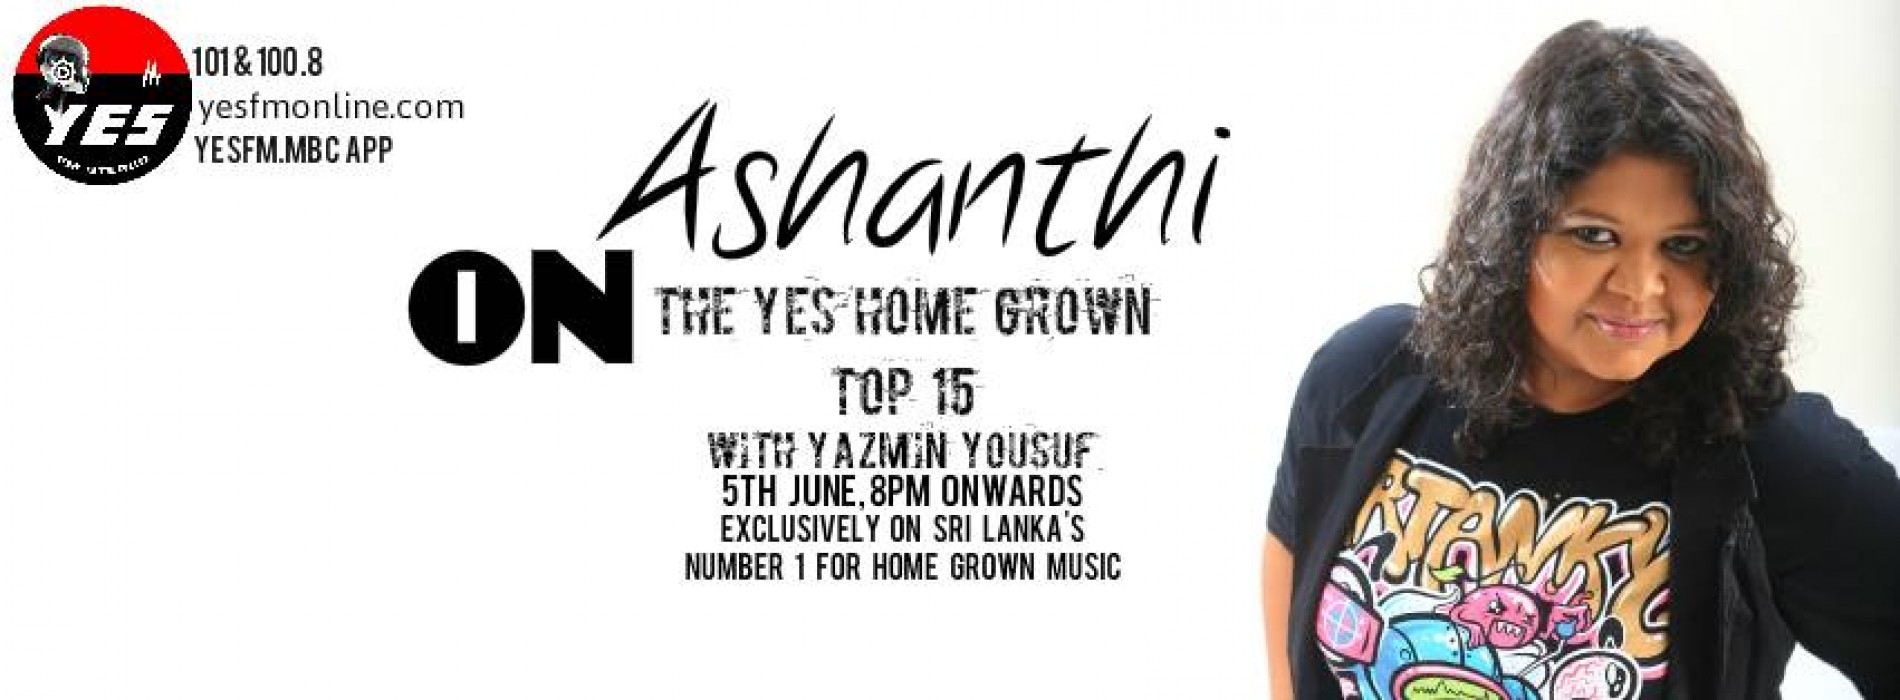 Ashanthi On The YES Home Grown Top 15